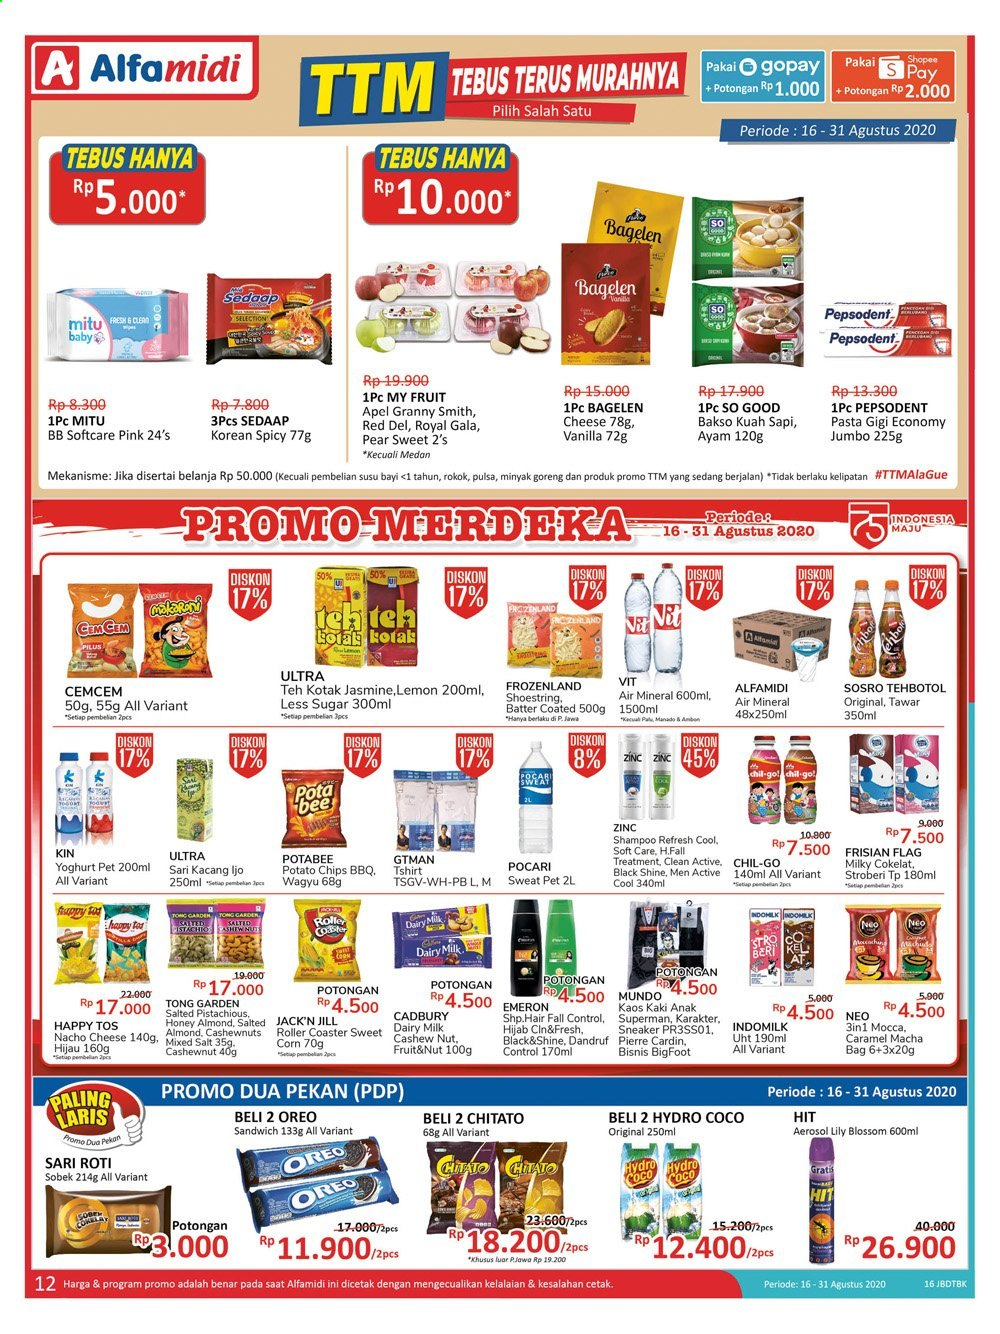 Promo Alfamidi - 08/16/2020 - 08/31/2020 - Produk diskon - milk, indomilk, fruit, goreng, zinc, tong, treatment, sugar, soft care, shampoo, potato chips, ps+, pepsodent, pet, pierre cardin, lemon, oreo, minyak, minyak goreng, mitu, kaos, kacang, chips, hit, honey, corn, coco, cadbury, caramel, bag, apel, aerosol, anak. Halaman 12.